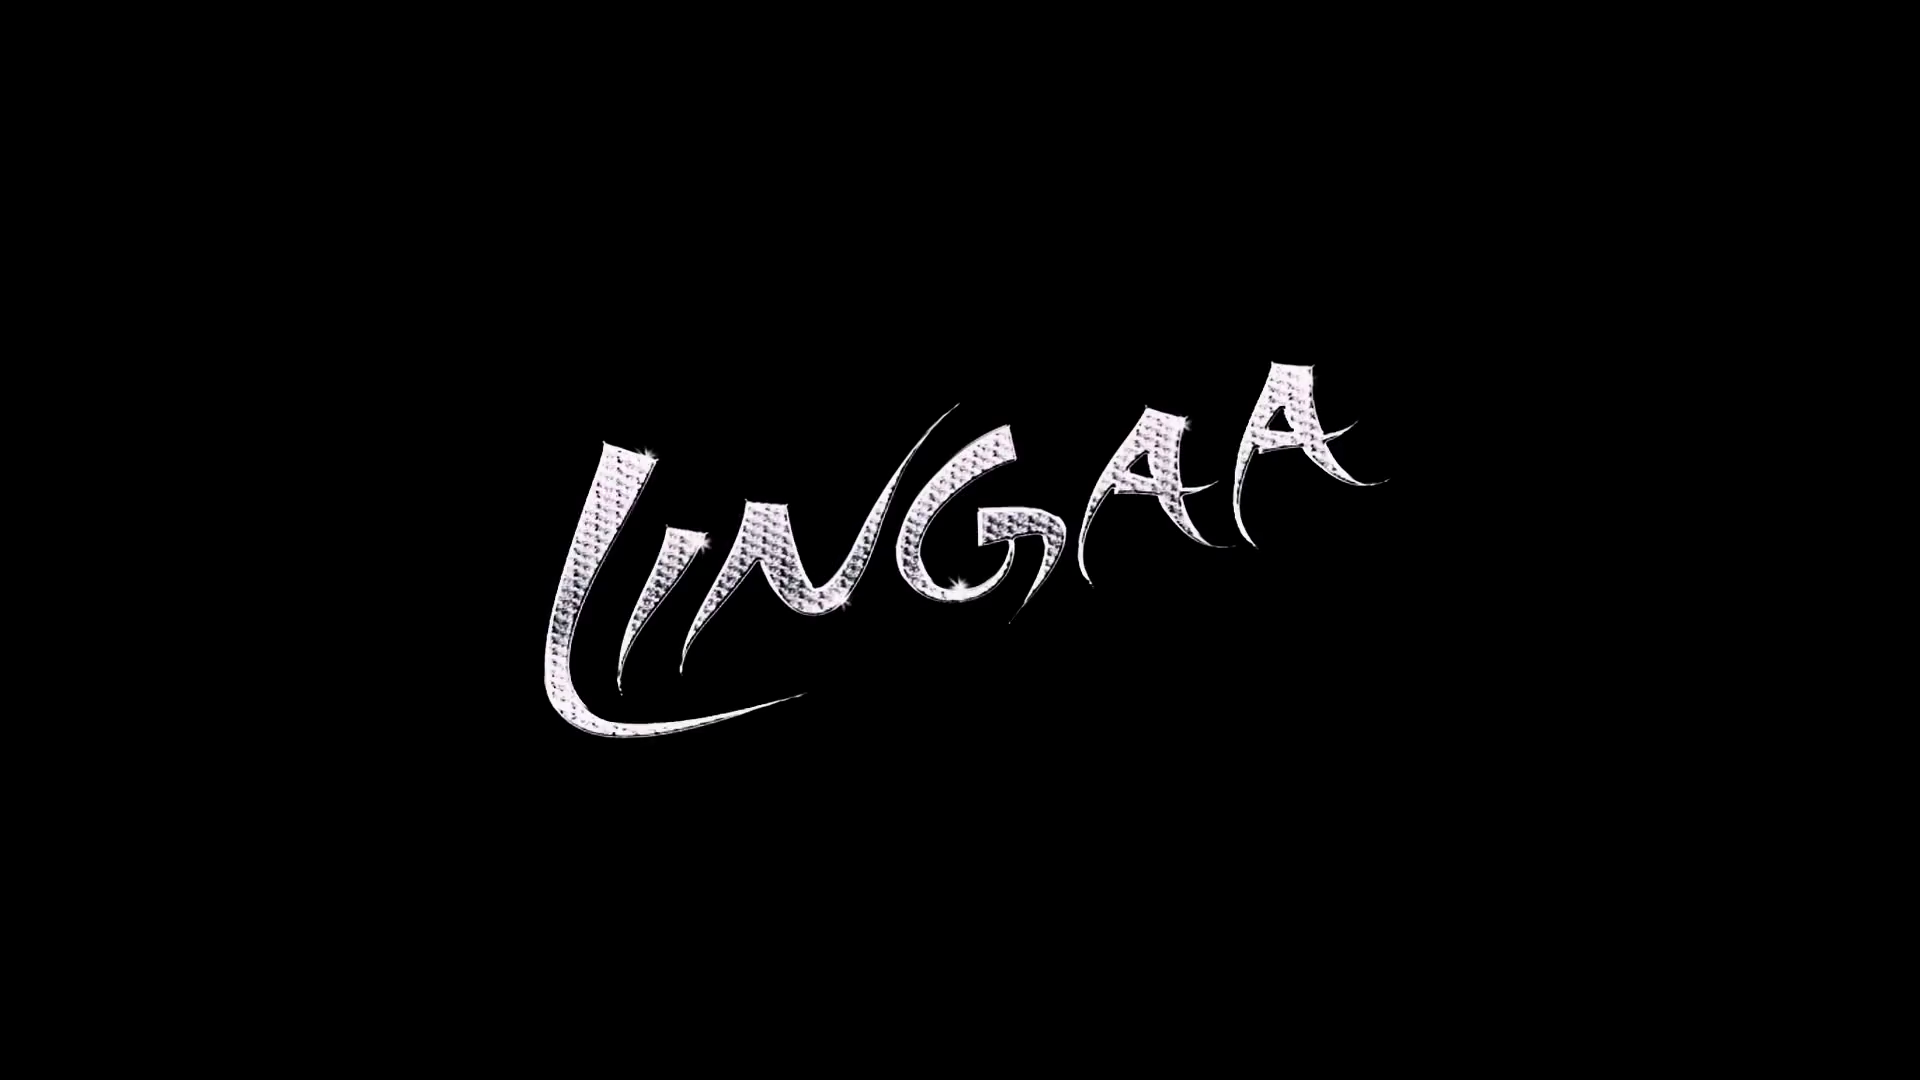 lingaa-first-officia-poster-hd-wallpaper-download